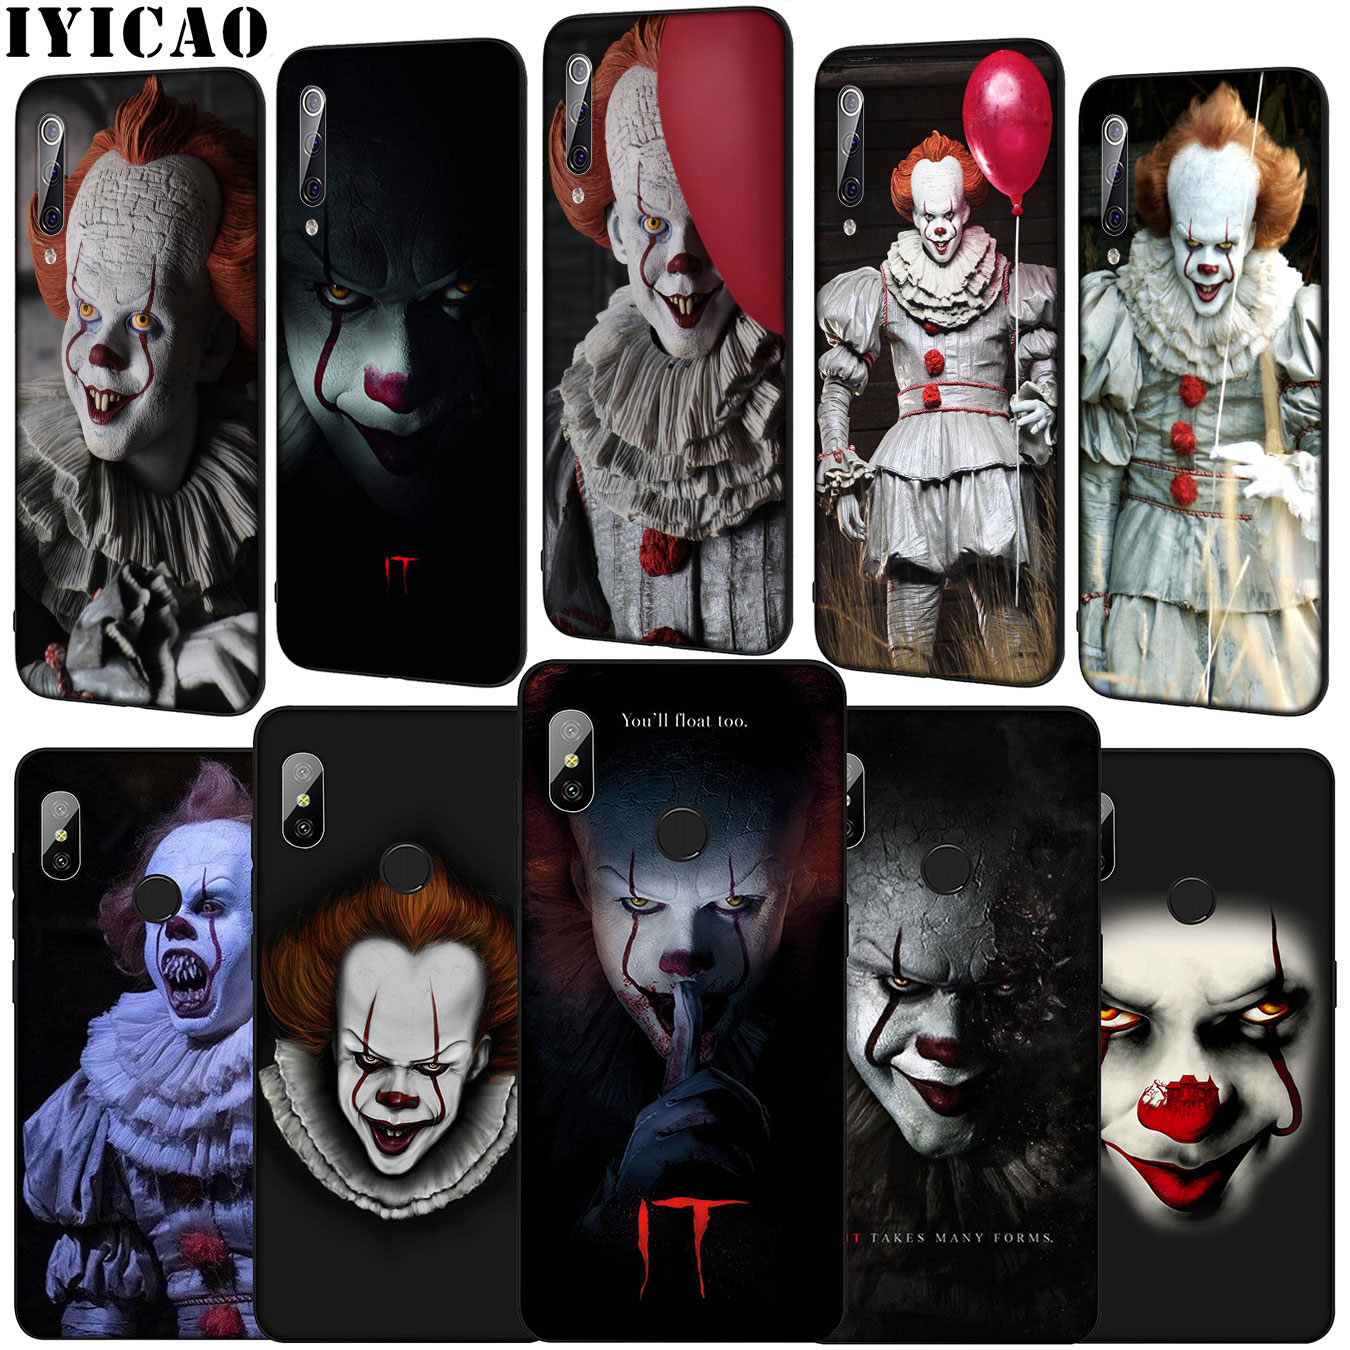 IYICAO the film IT Pennywise Soft Phone Case for Xiaomi Mi 9 9T A3 PRO CC9 CC9E 8 A2 Lite A1 6 6X 5X f1 MAX 3 mi9 mi8